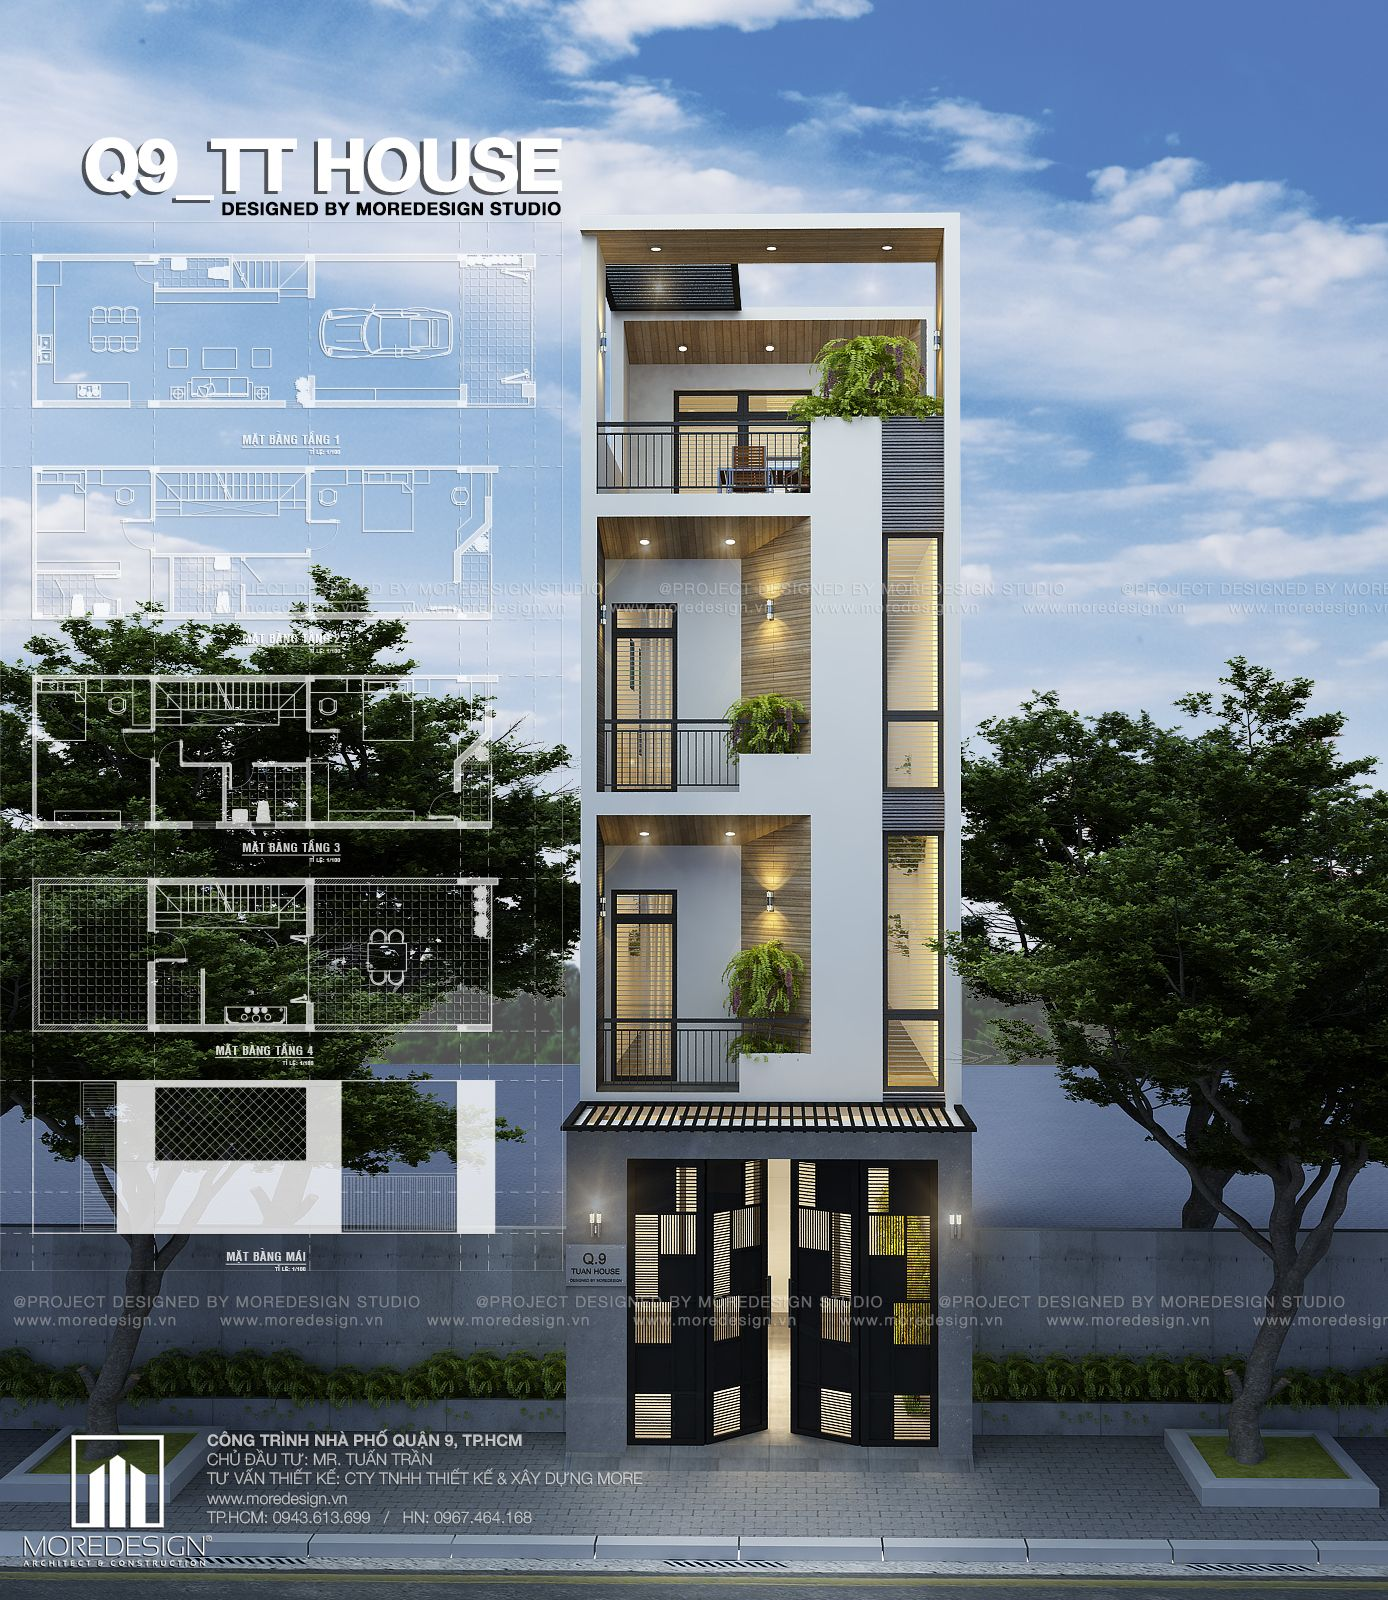 Q9 house architecture concept no 2 designed by moredesign studio www moredesign vn